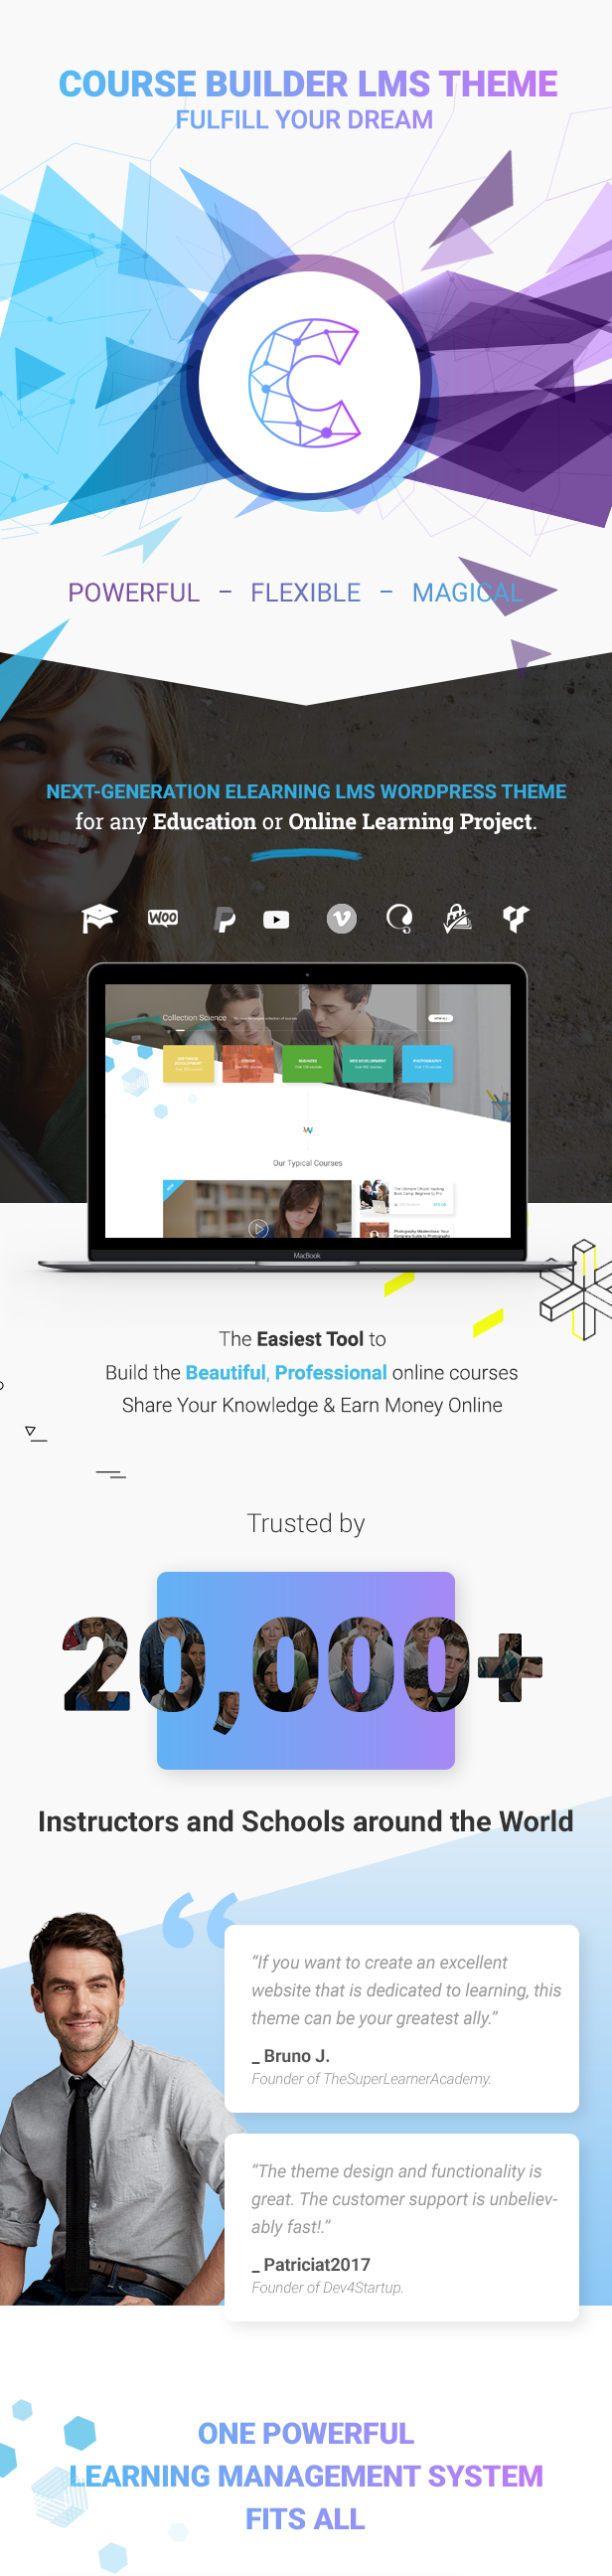 Powerful Learning Management System